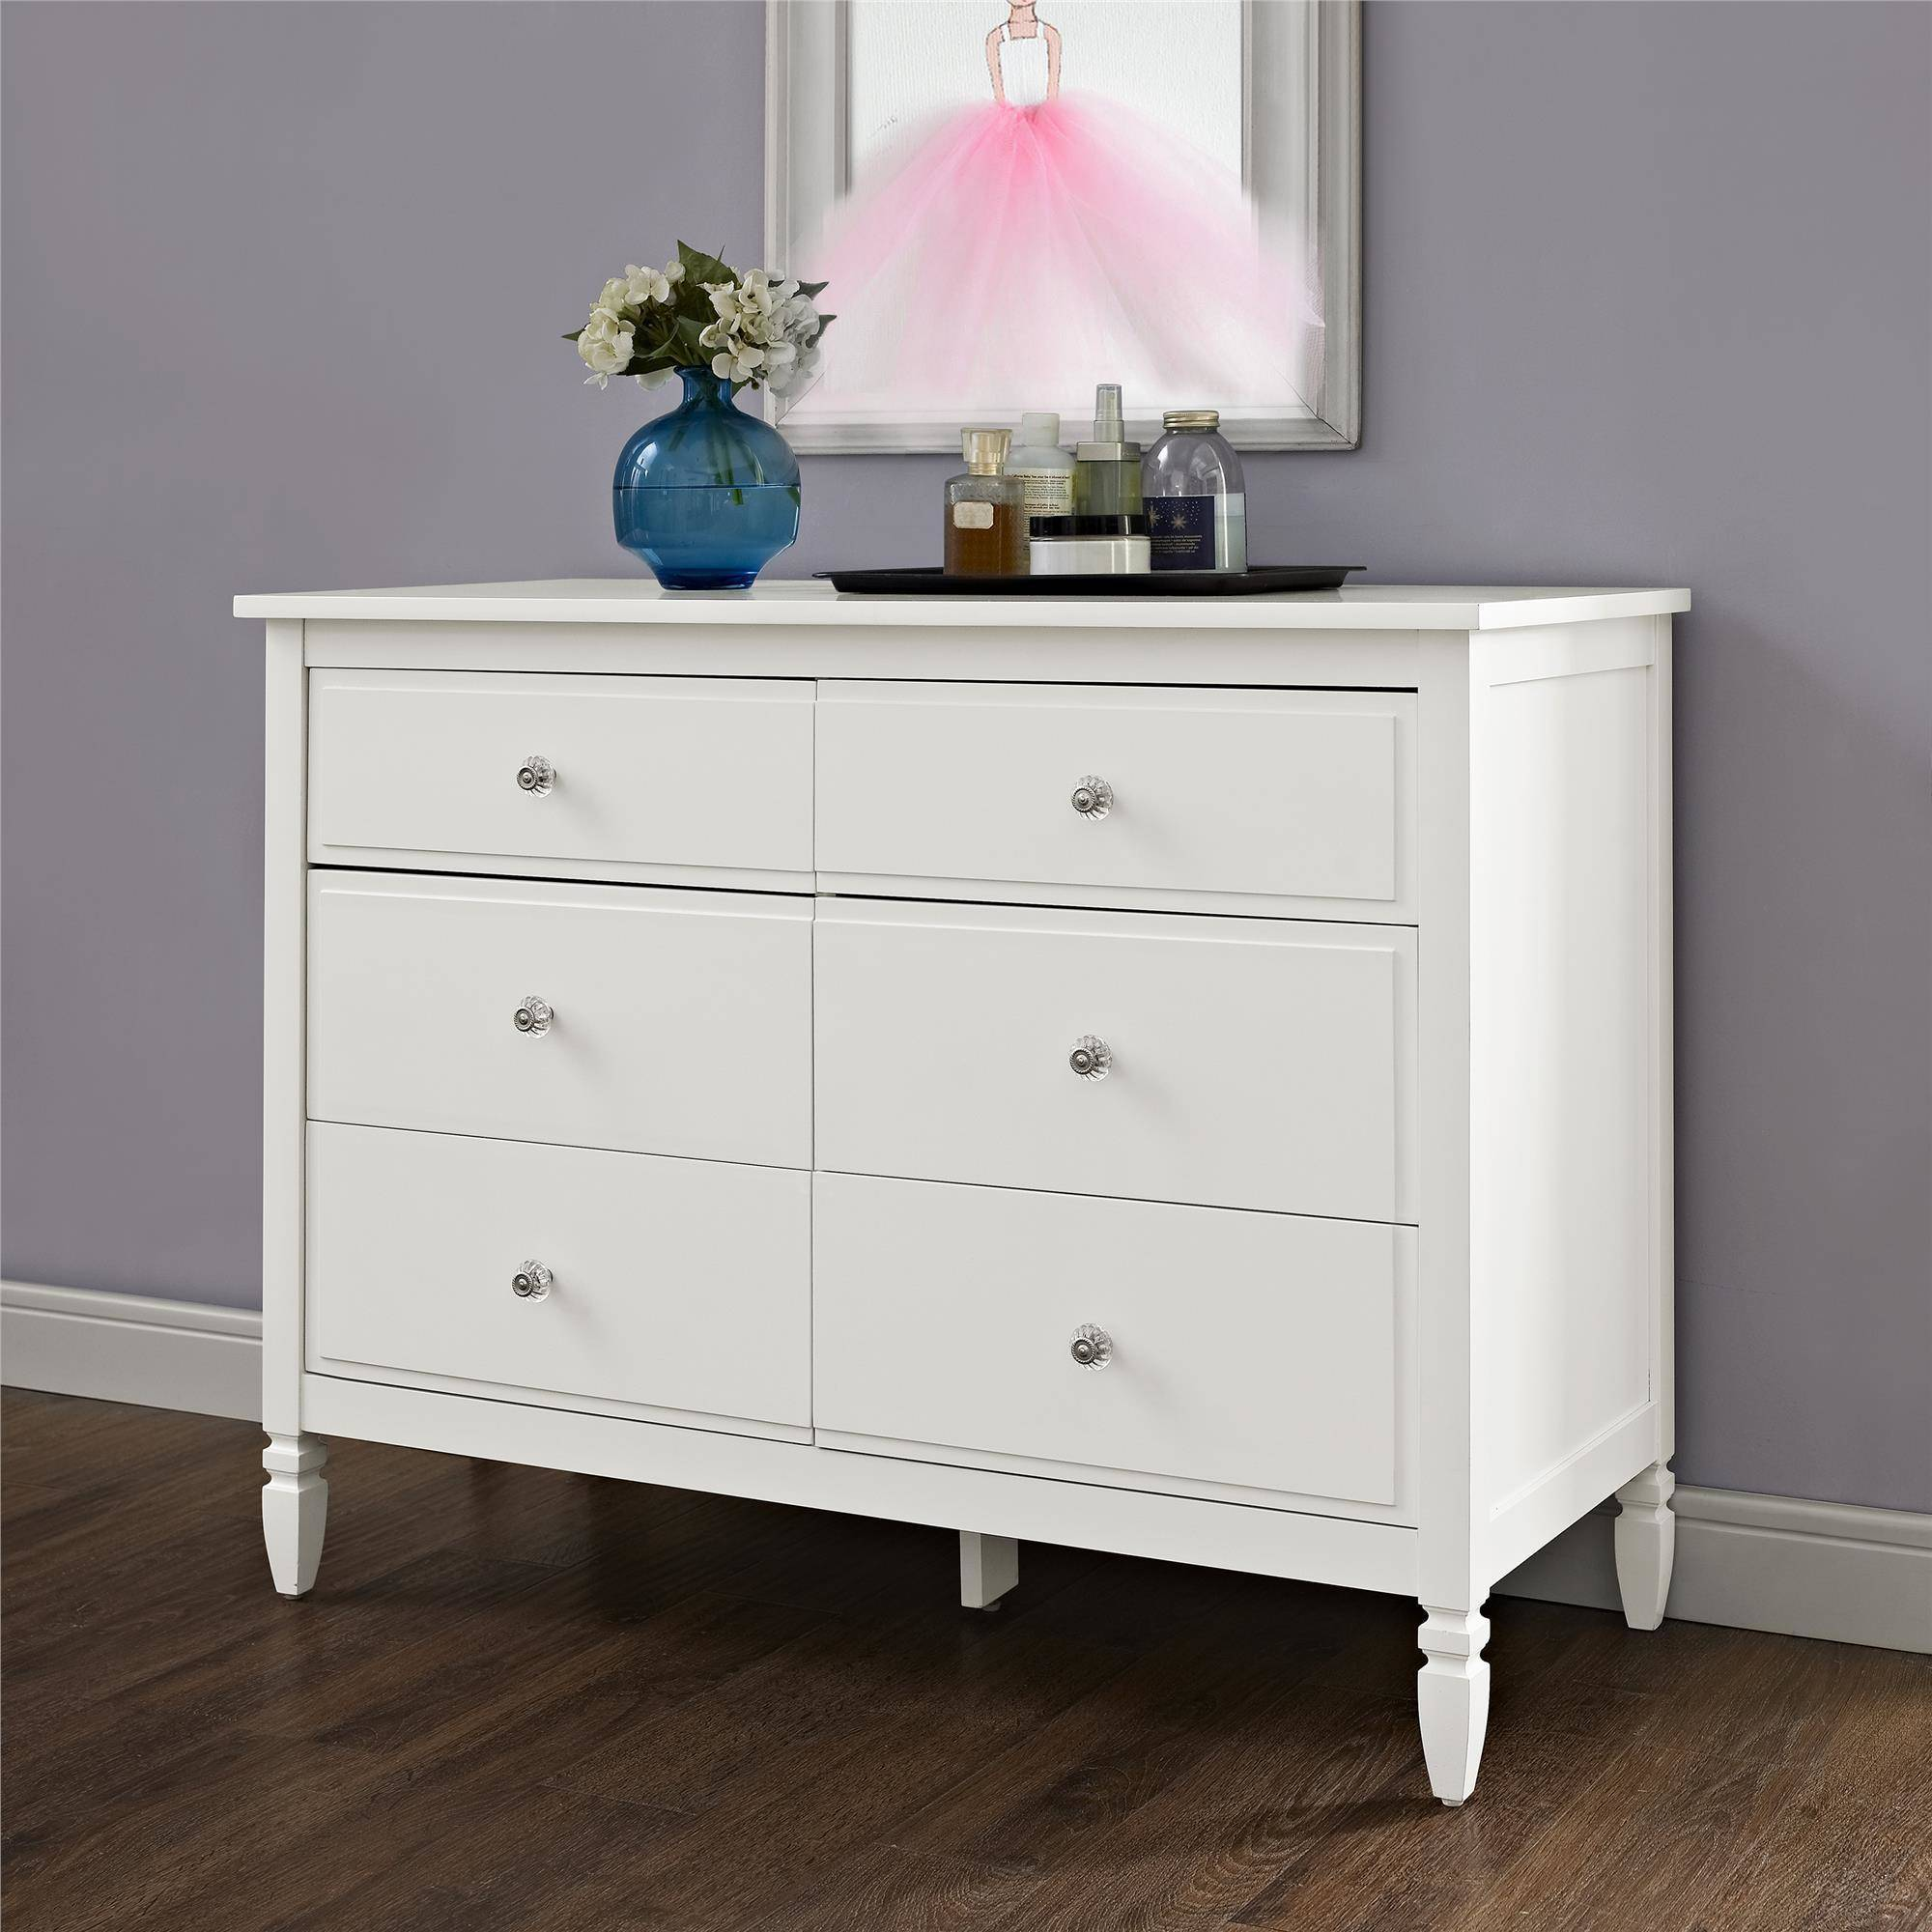 Better Homes and Gardens Bedroom Furniture - Walmart.com